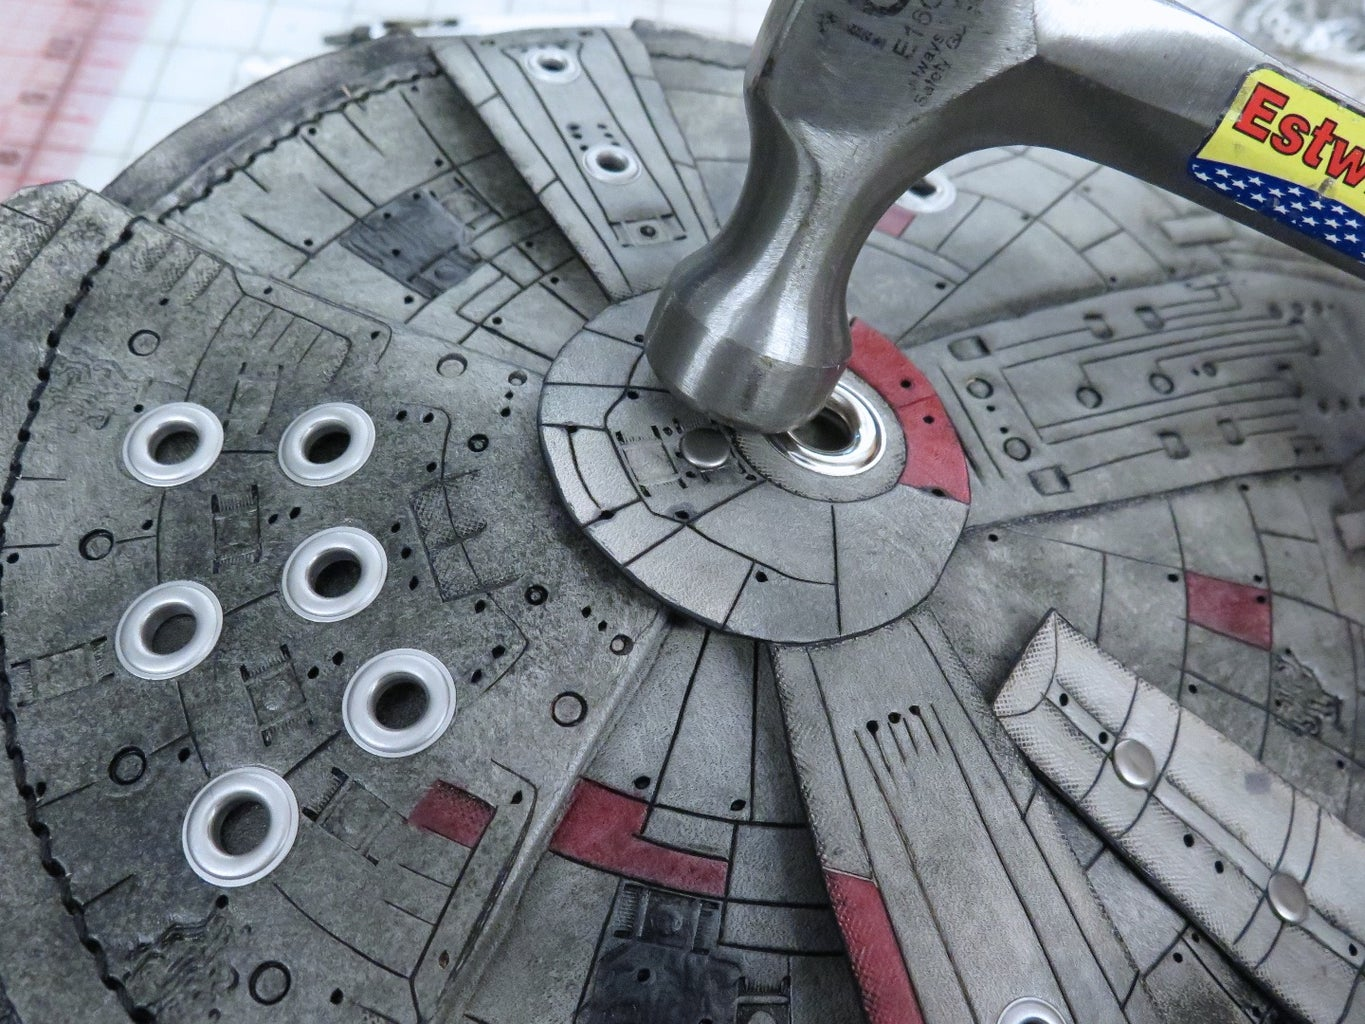 Attaching the Central Gun Well and Escape Pods